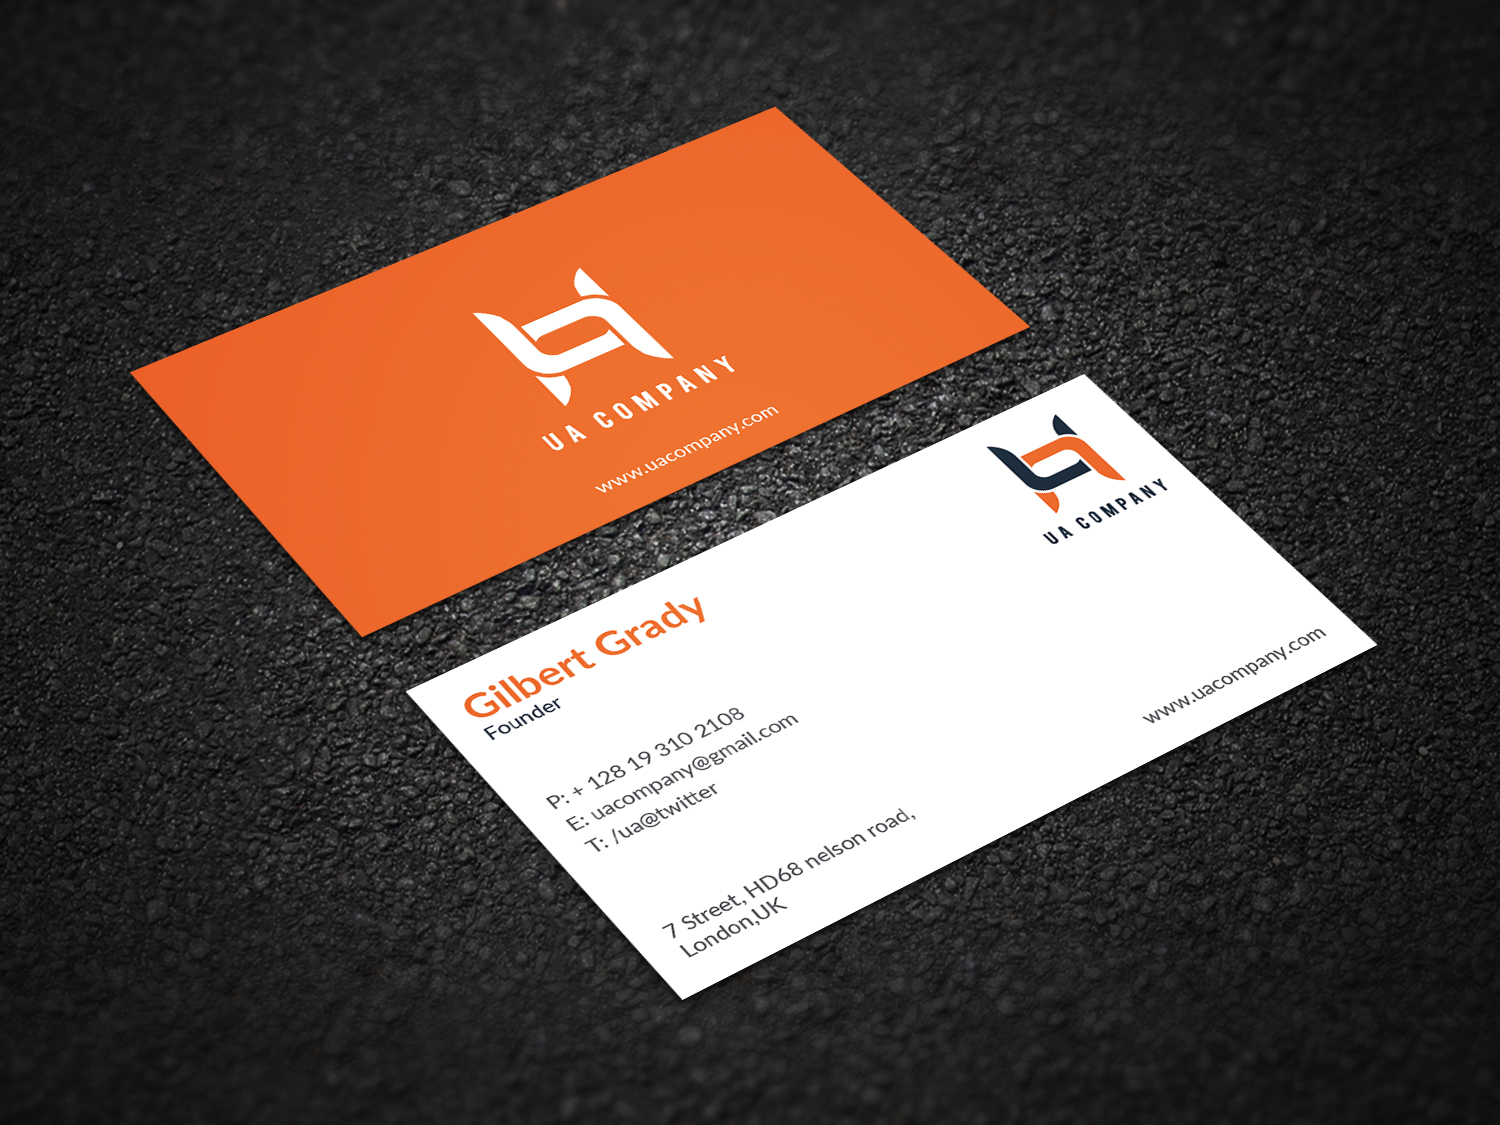 I will do corporate minimalist business card design within 16 hours